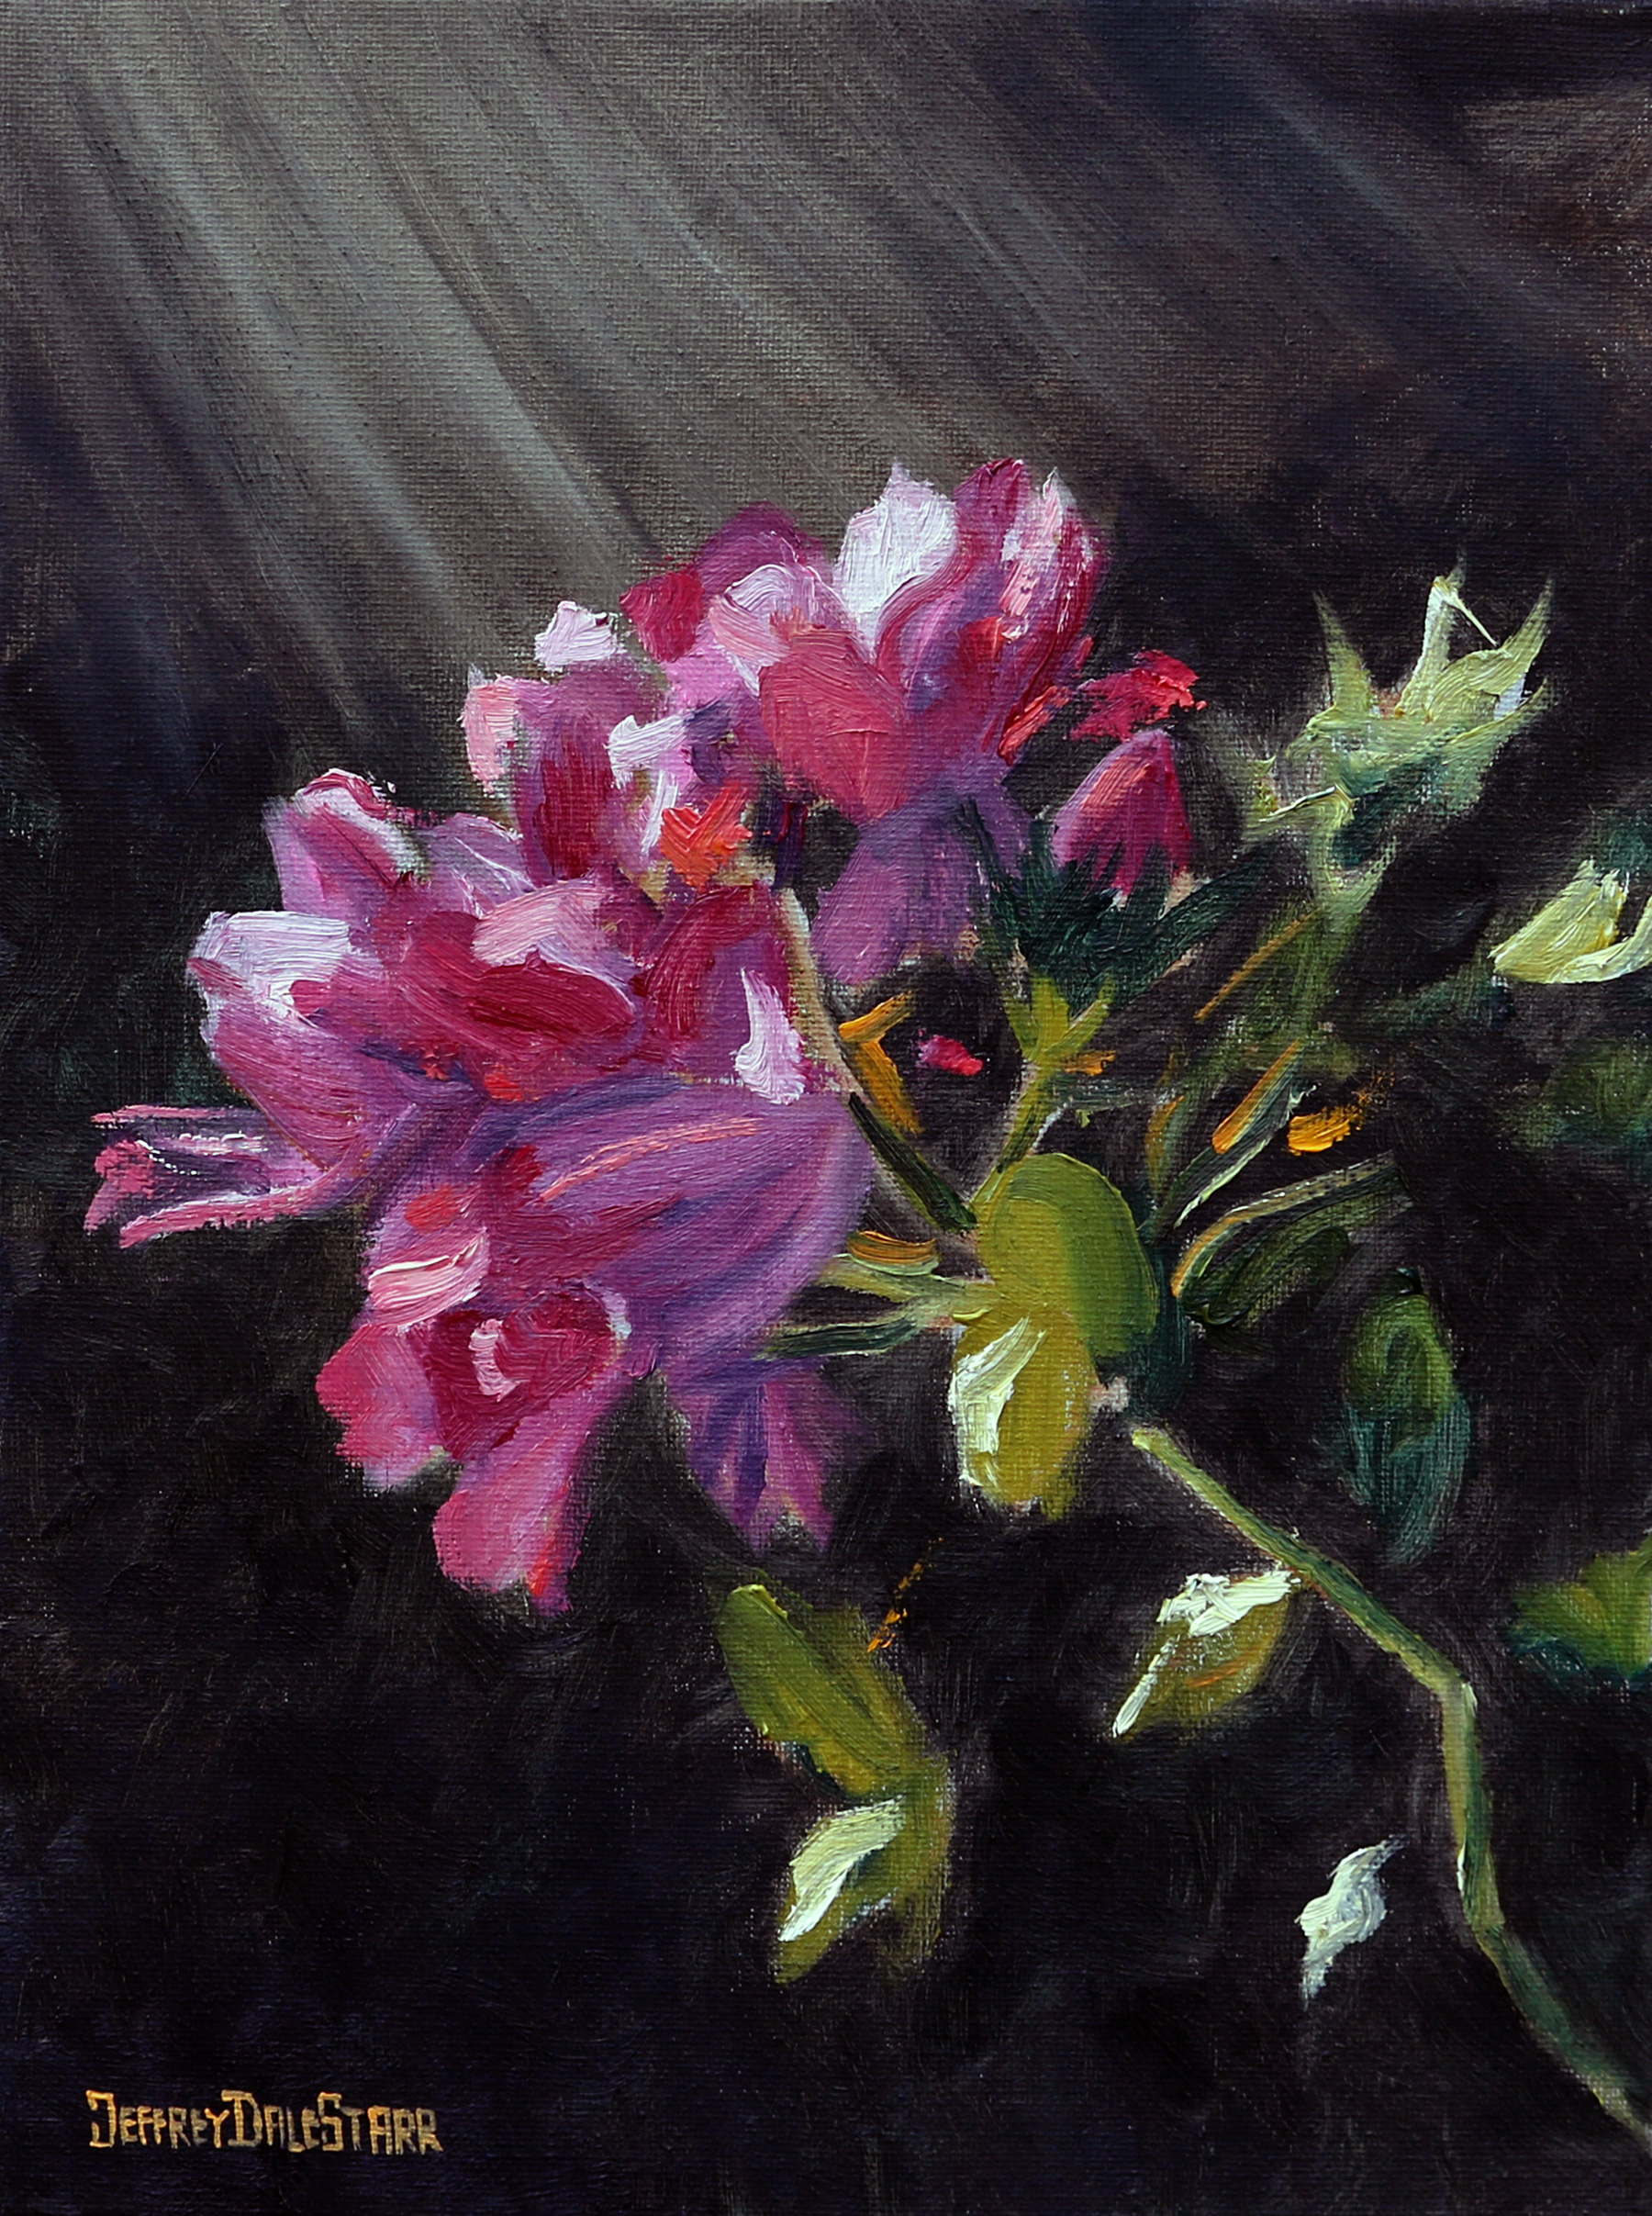 oil painting of knockout roses bathed in sunlight by american artist jeffrey dale starr